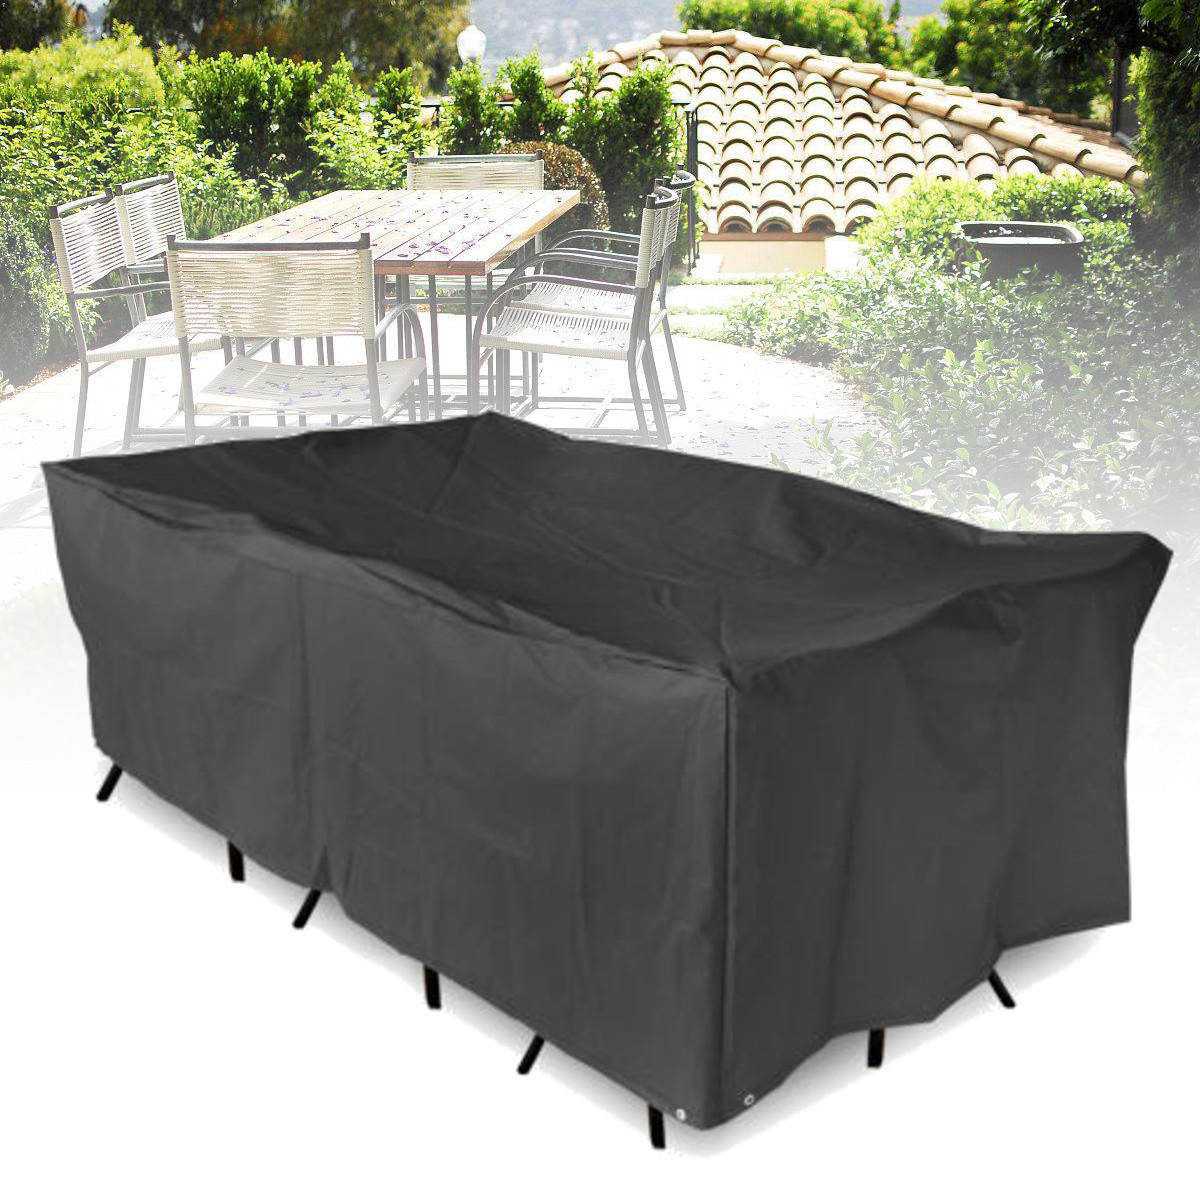 Outdoor Furniture Waterproof Cover Garden Patio Table Chair